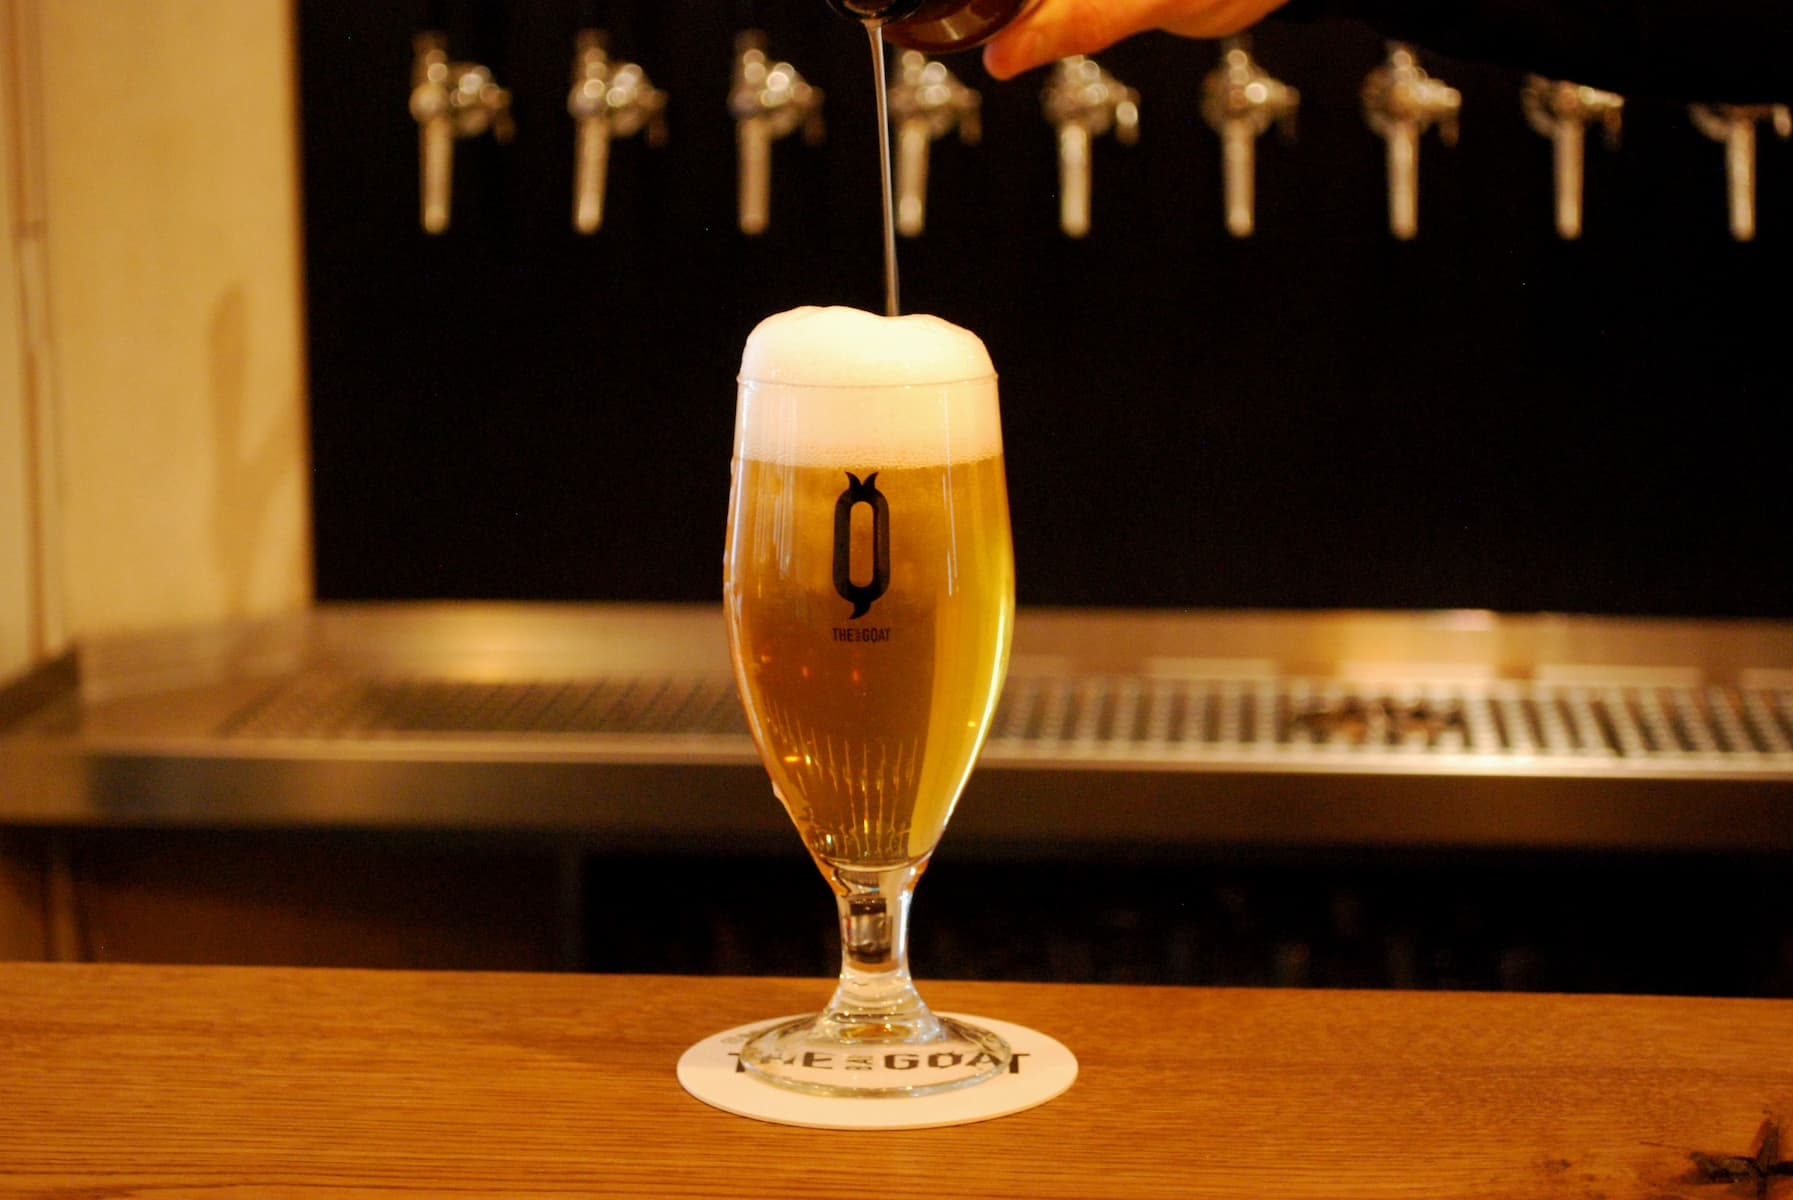 A fresgly tapped beer on our custom-made bar surface.